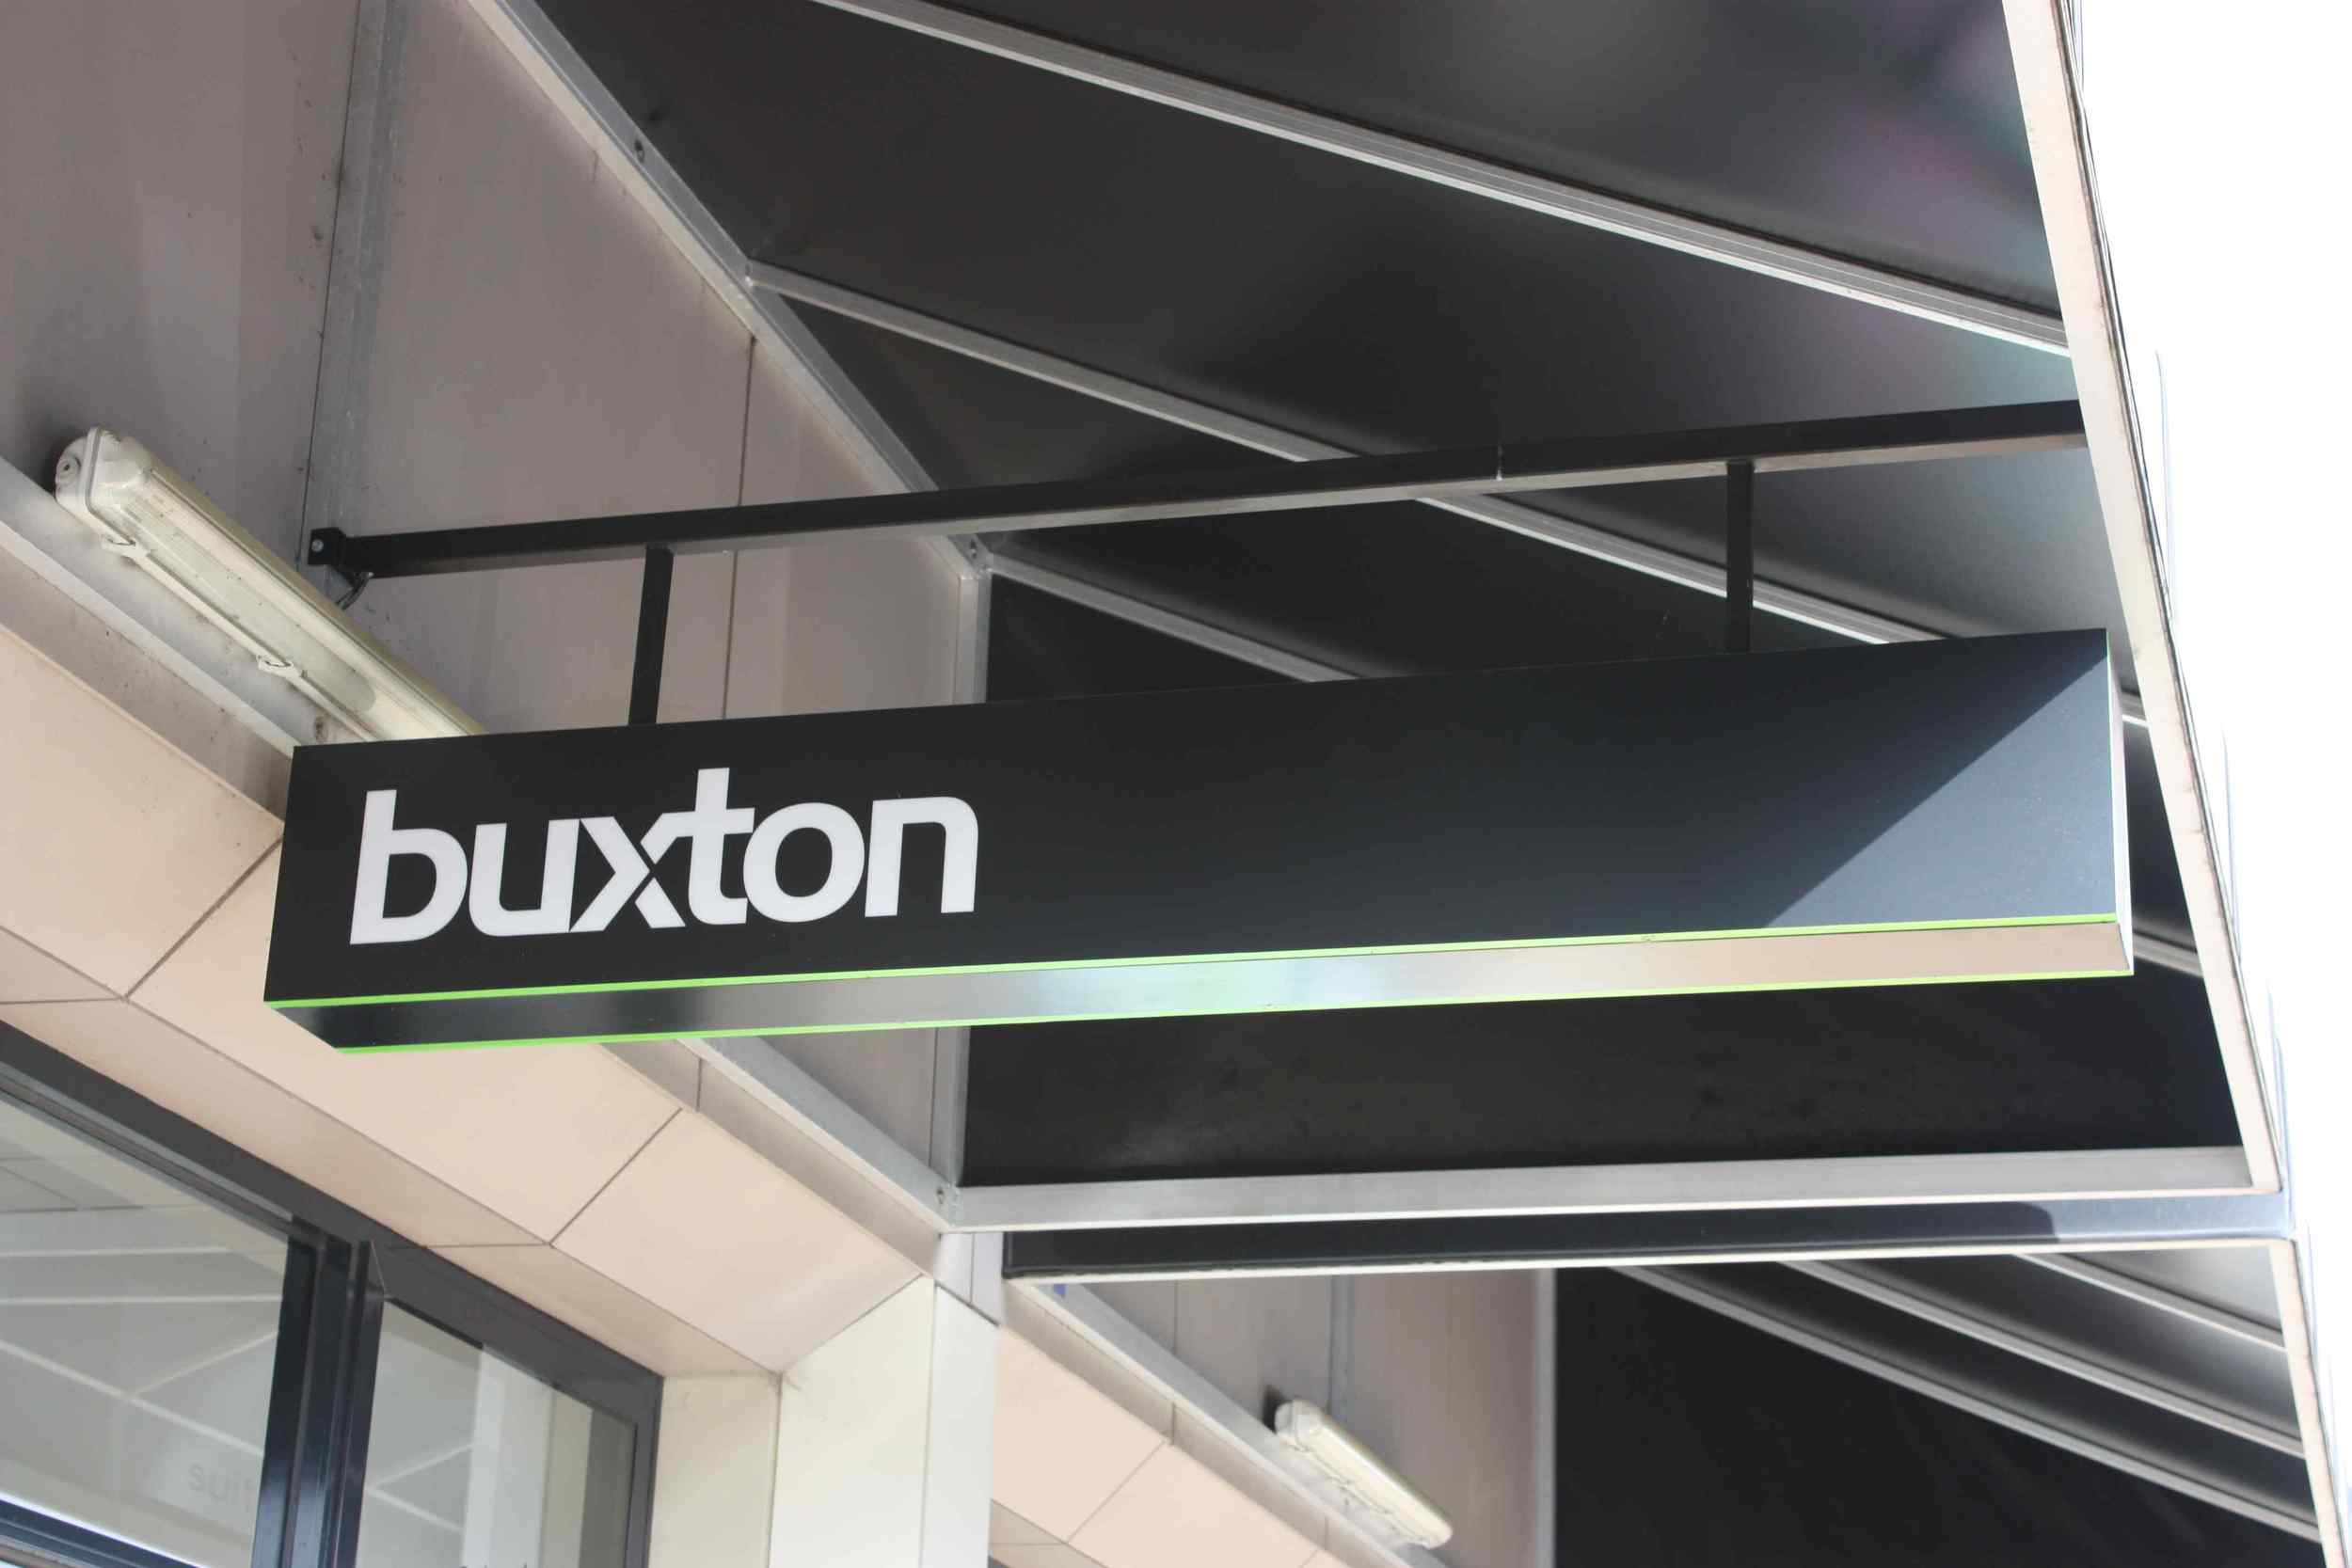 Buxton Under Awning Lightbox Signs Geelong.jpg